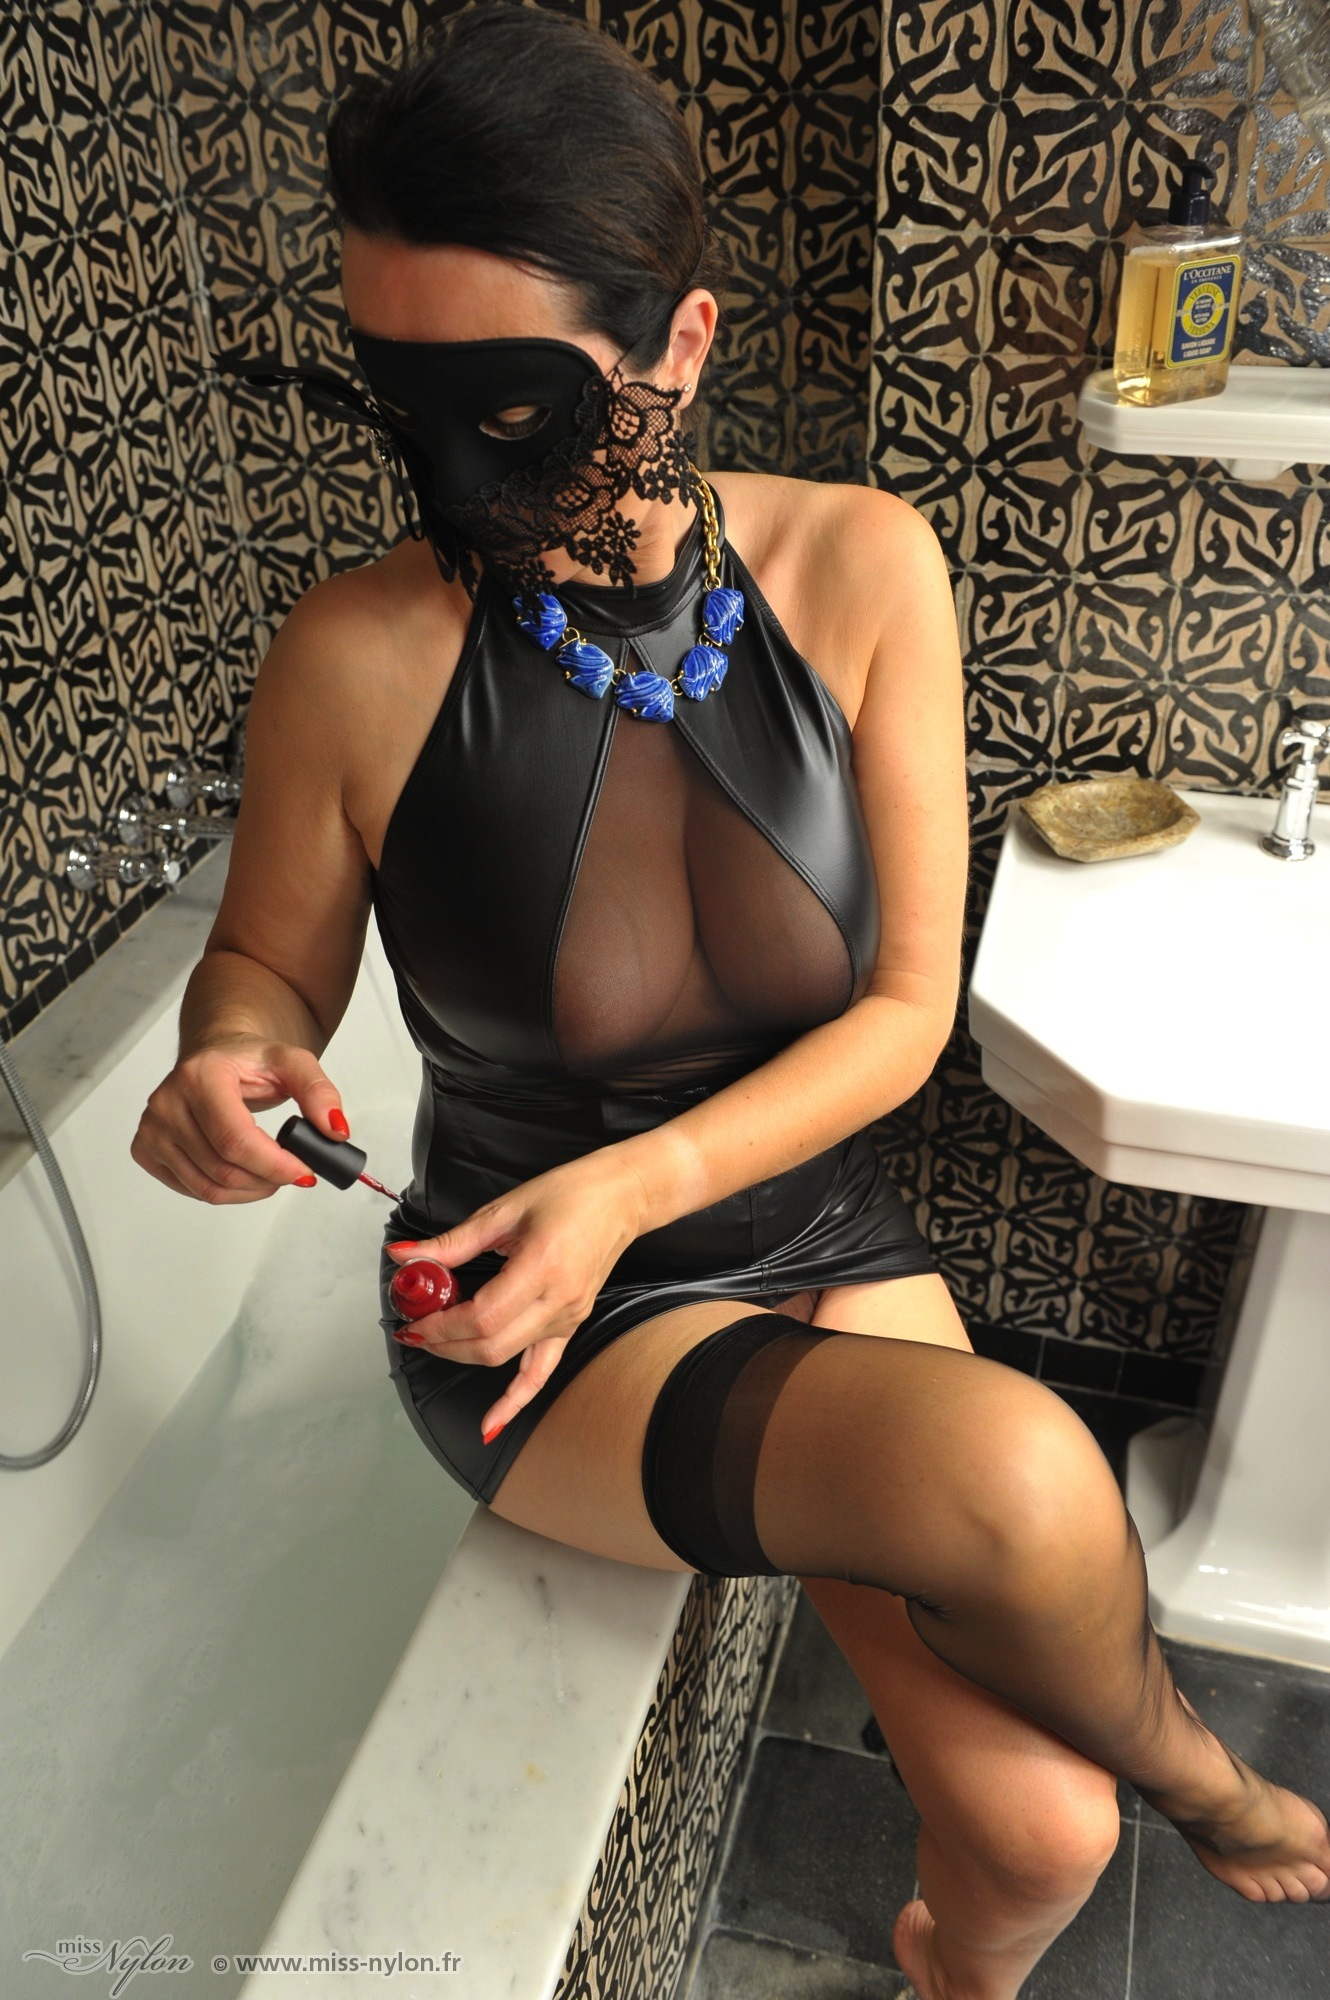 erotische massage antwerpen centrum private escort damen